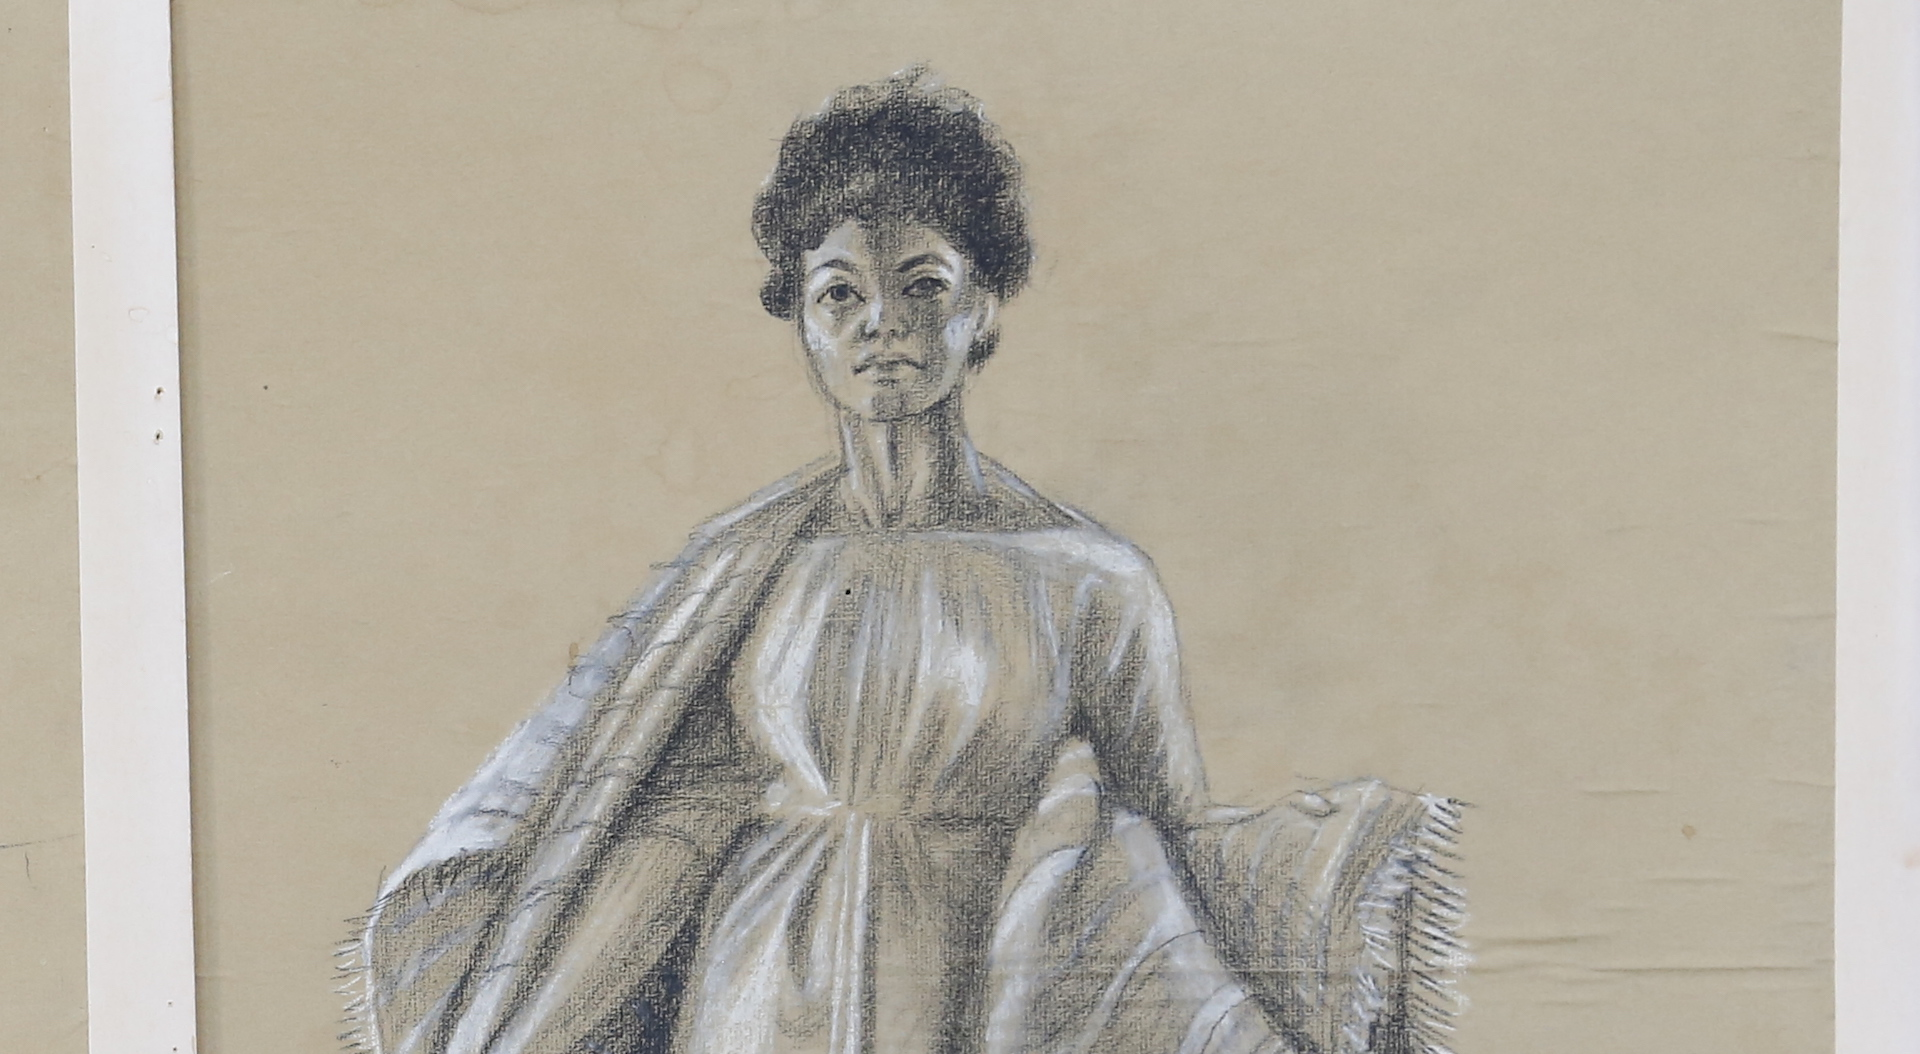 http://www-tc.pbs.org/prod-media/antiques-roadshow/article/images/ca-1960-john-biggers-drawings-crop-201306A44.JPG